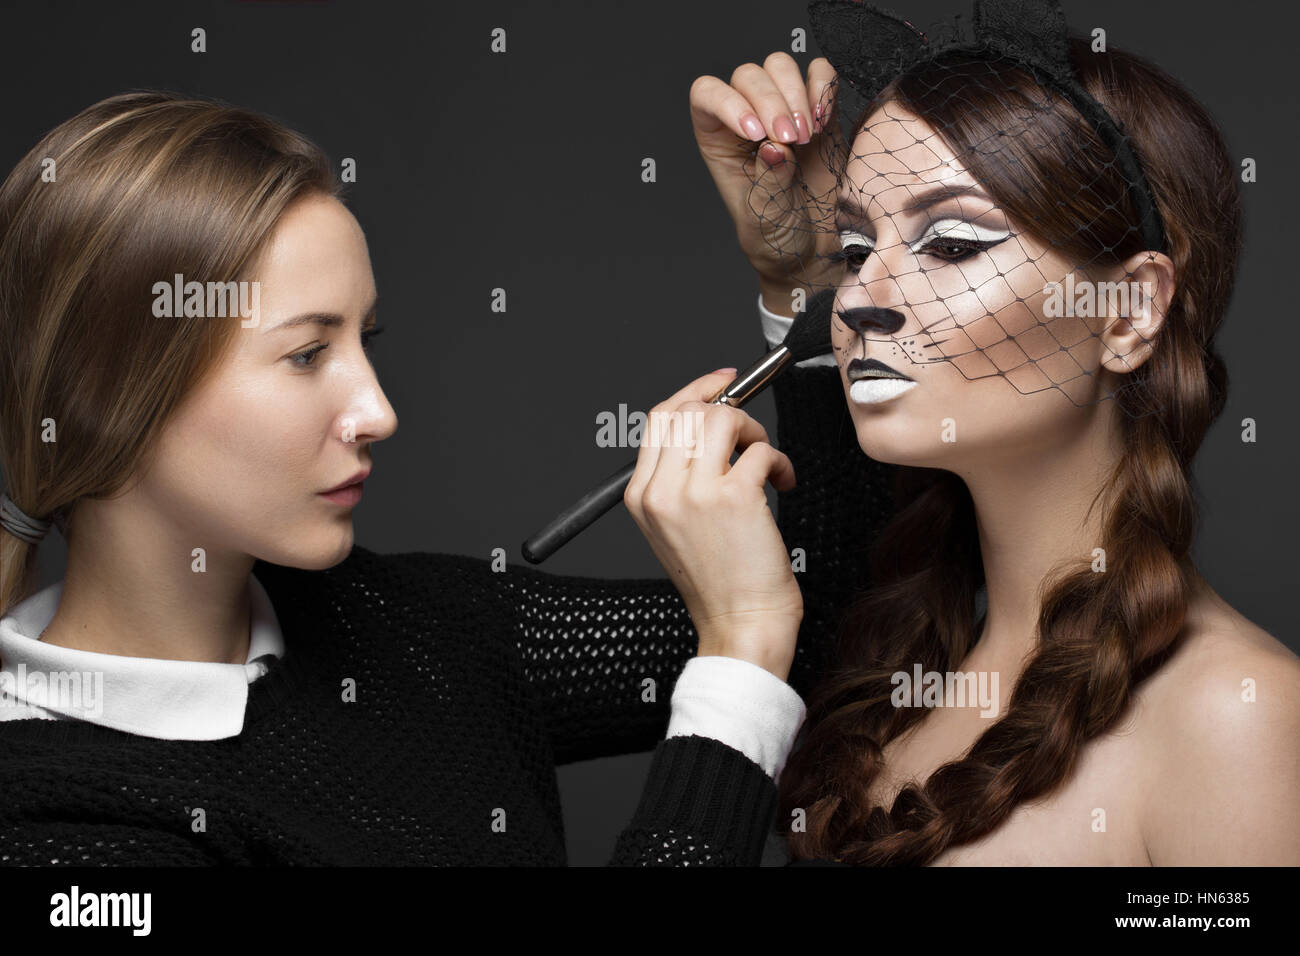 Two beautiful girls on photo shoot to apply face makeup . Beauty fashion model. - Stock Image